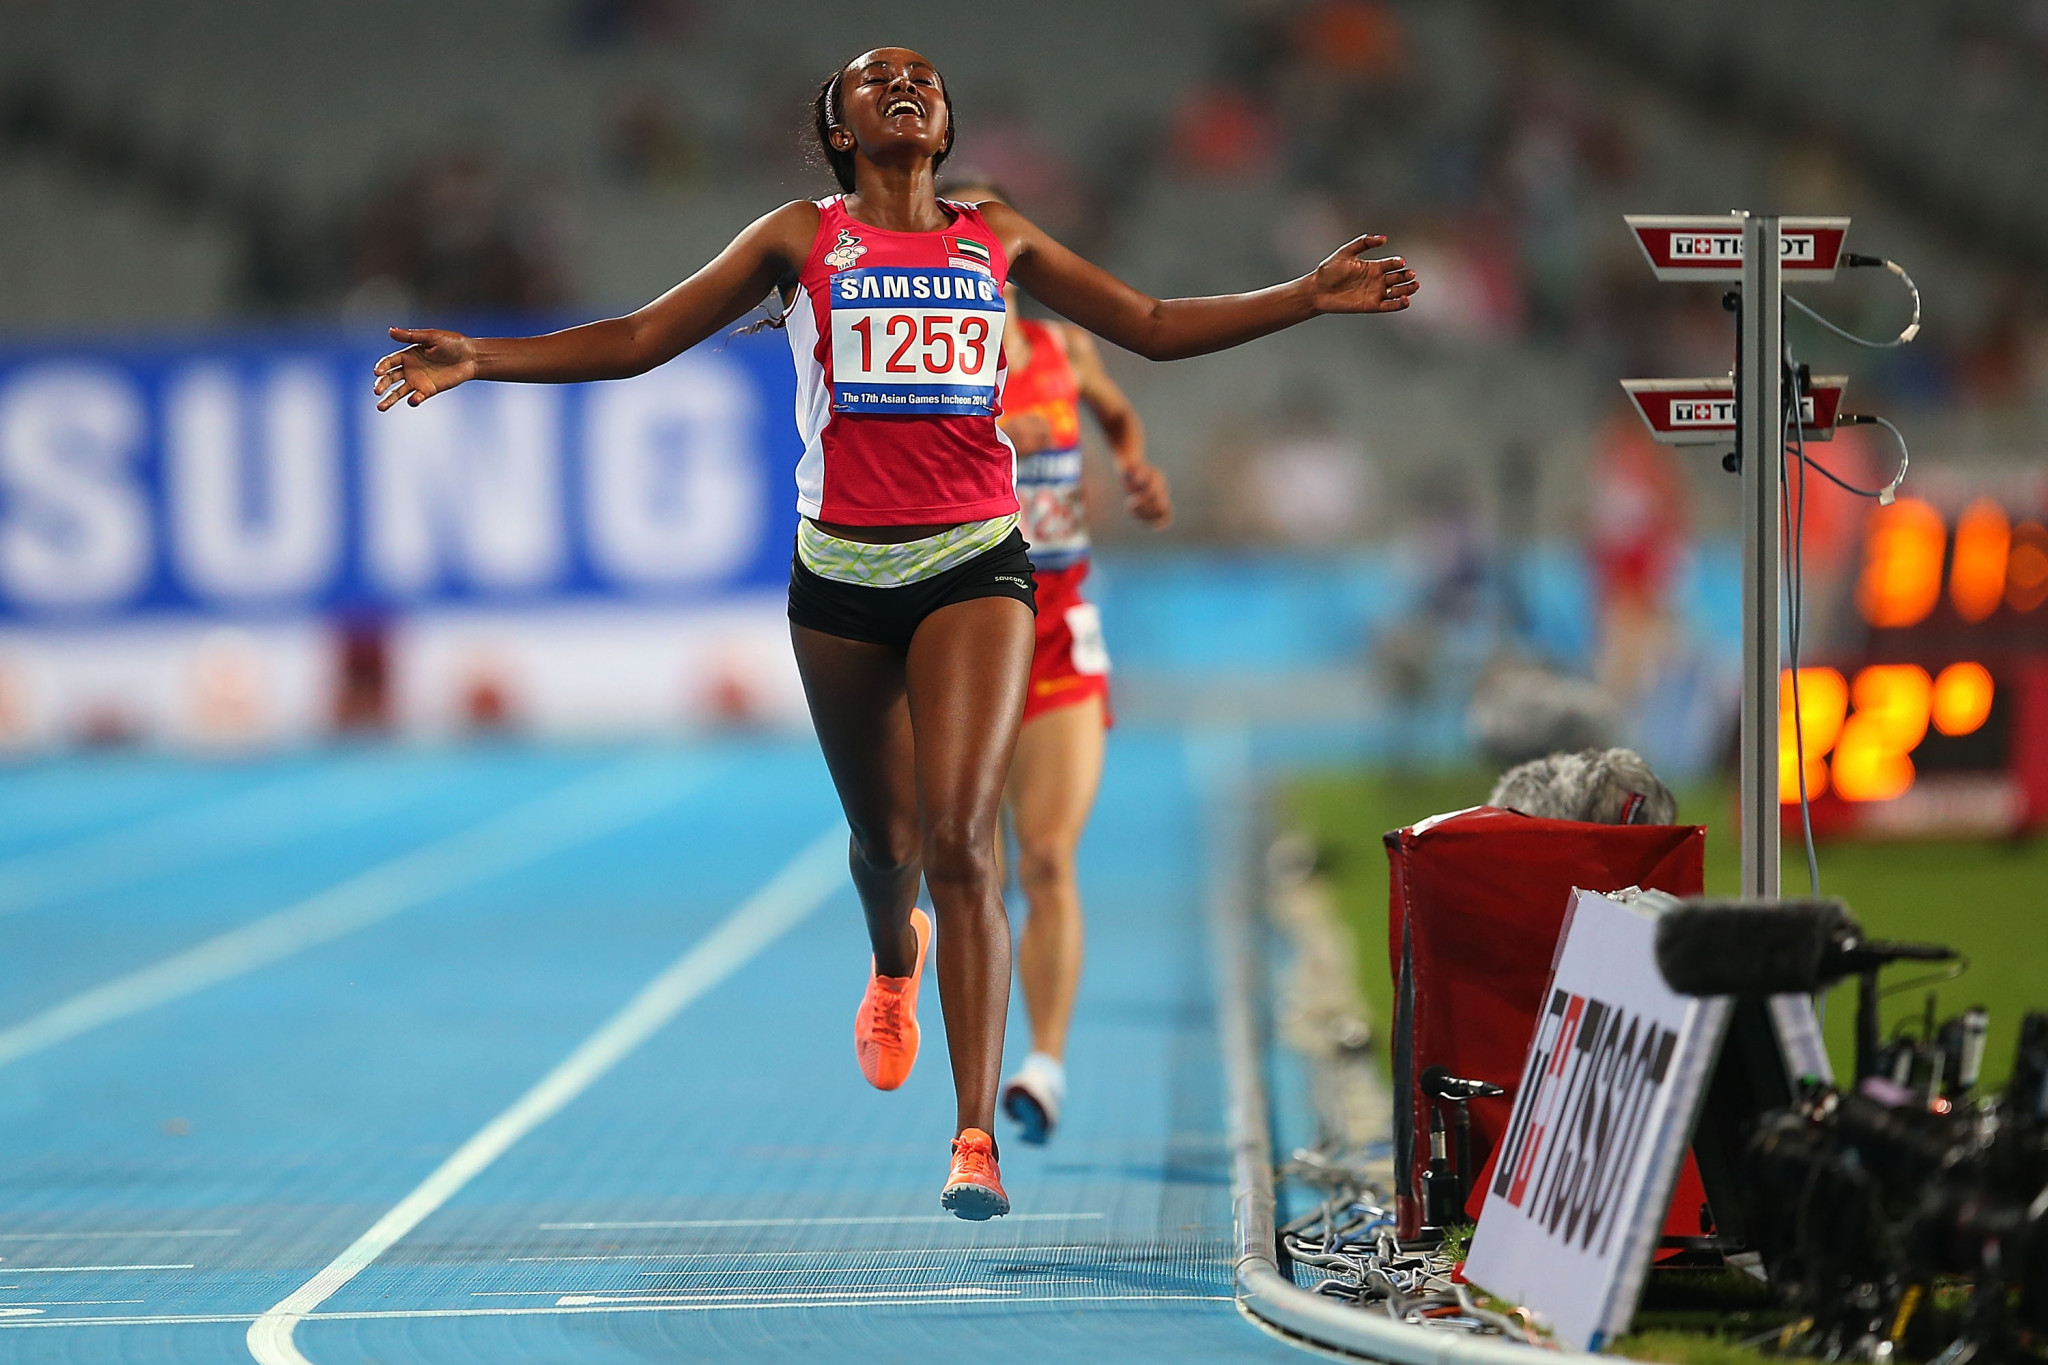 Alia Mohammed Saeed Mohammed won the sole gold medal for the UAE at the 2014 Asian Games ©Getty Images